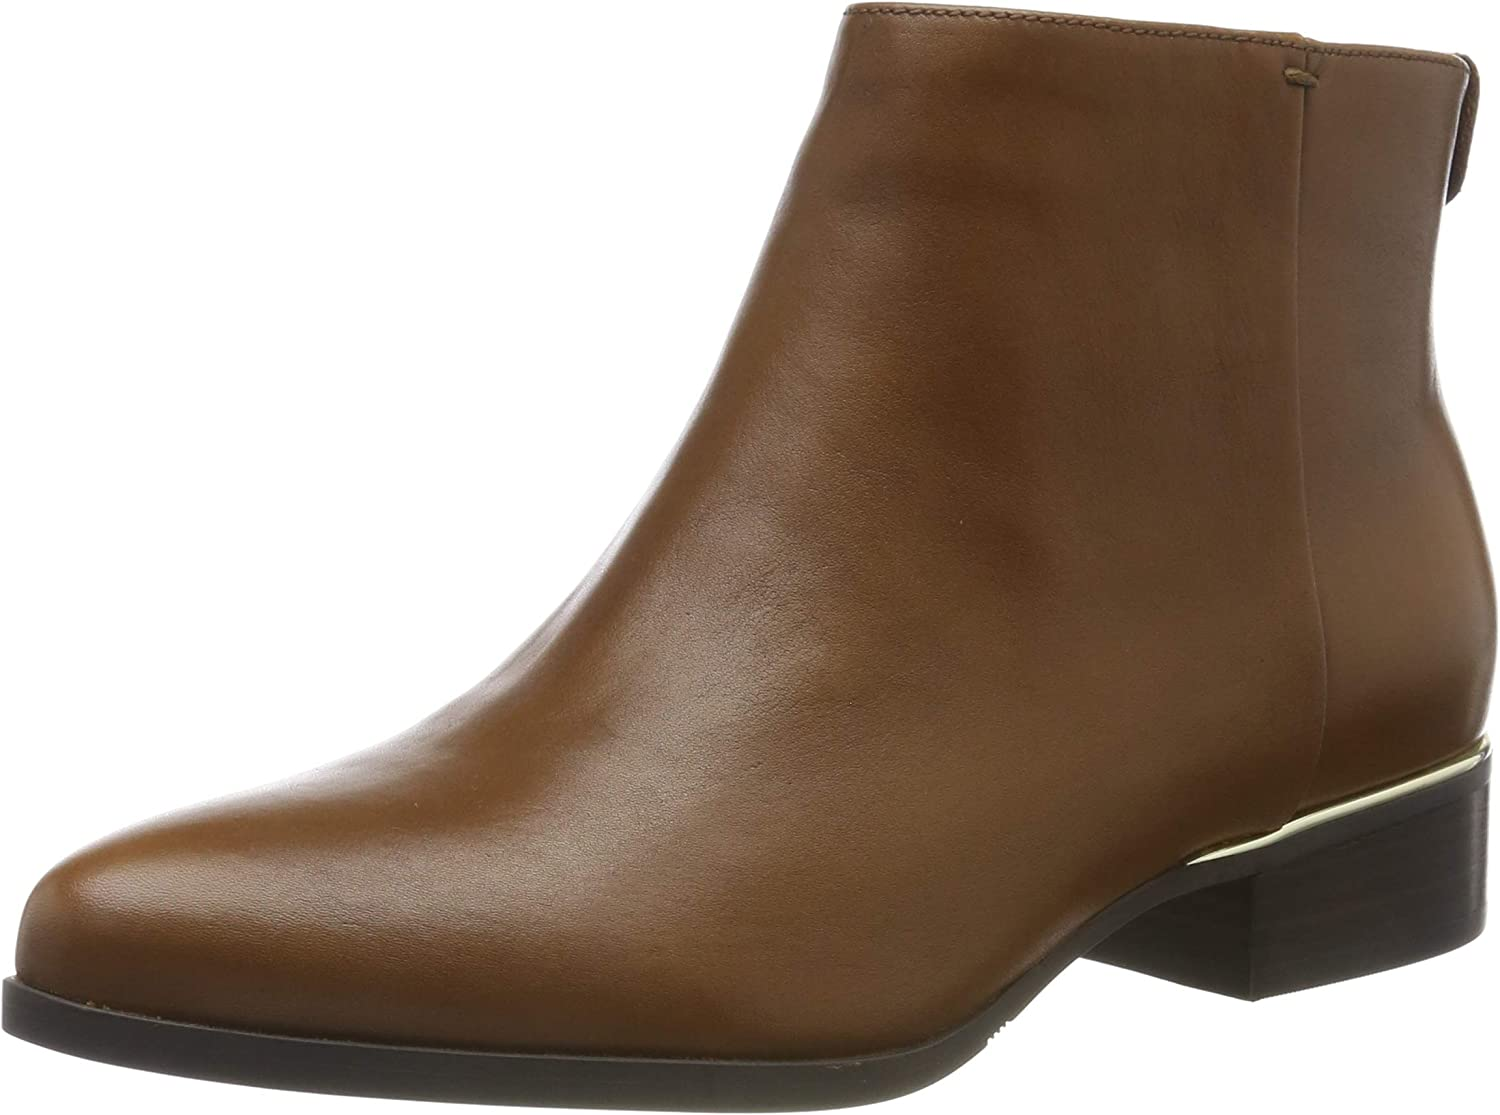 Guess Verneta/Stivaletto (Bootie)/Le, Botas Chelsea para Mujer